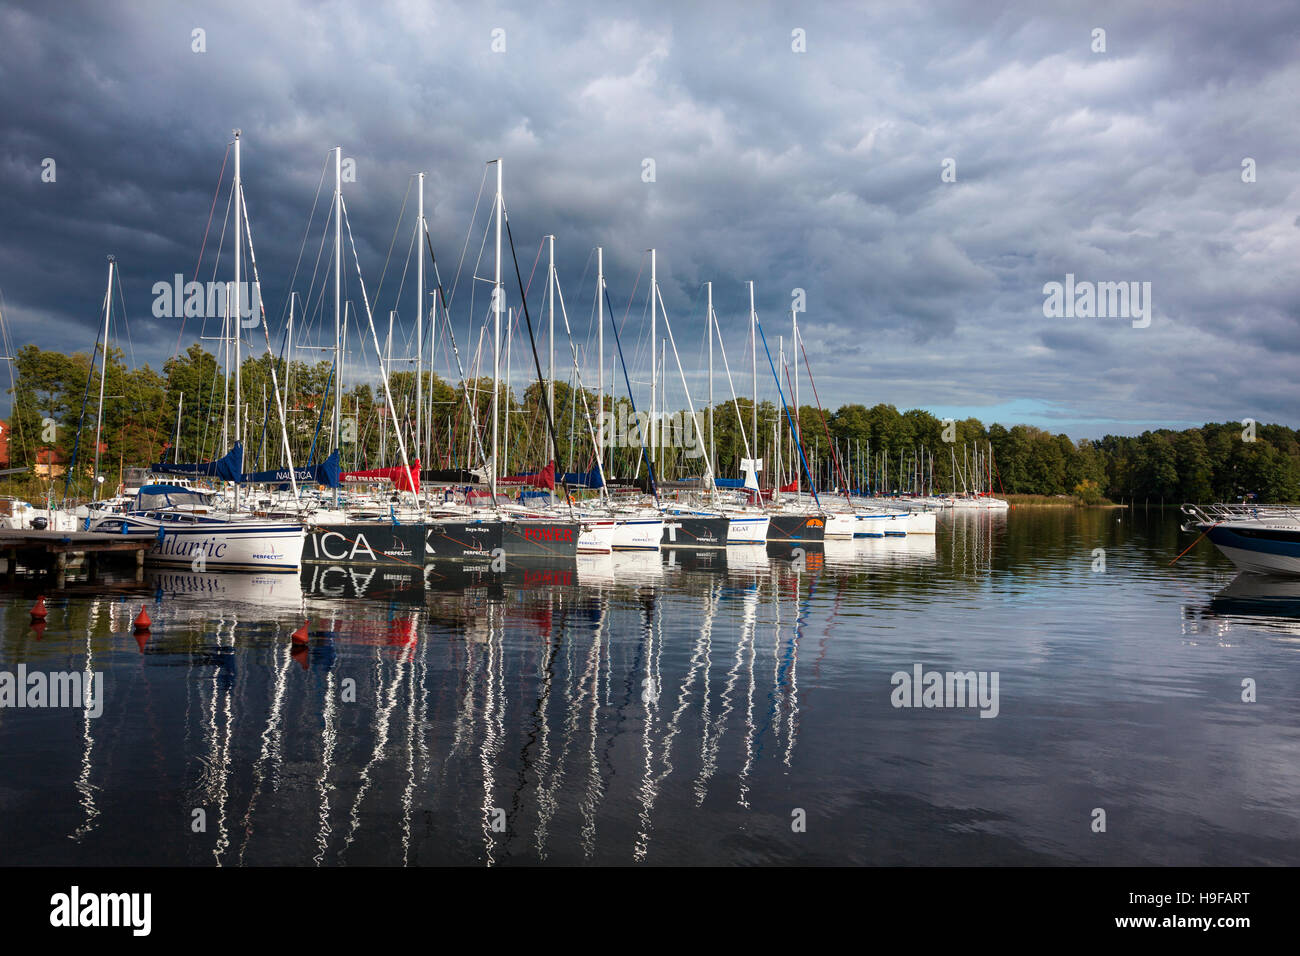 Marina with sailboats in Giżycko, Lake Kisajno, Mazury Lake District, Poland - Stock Image